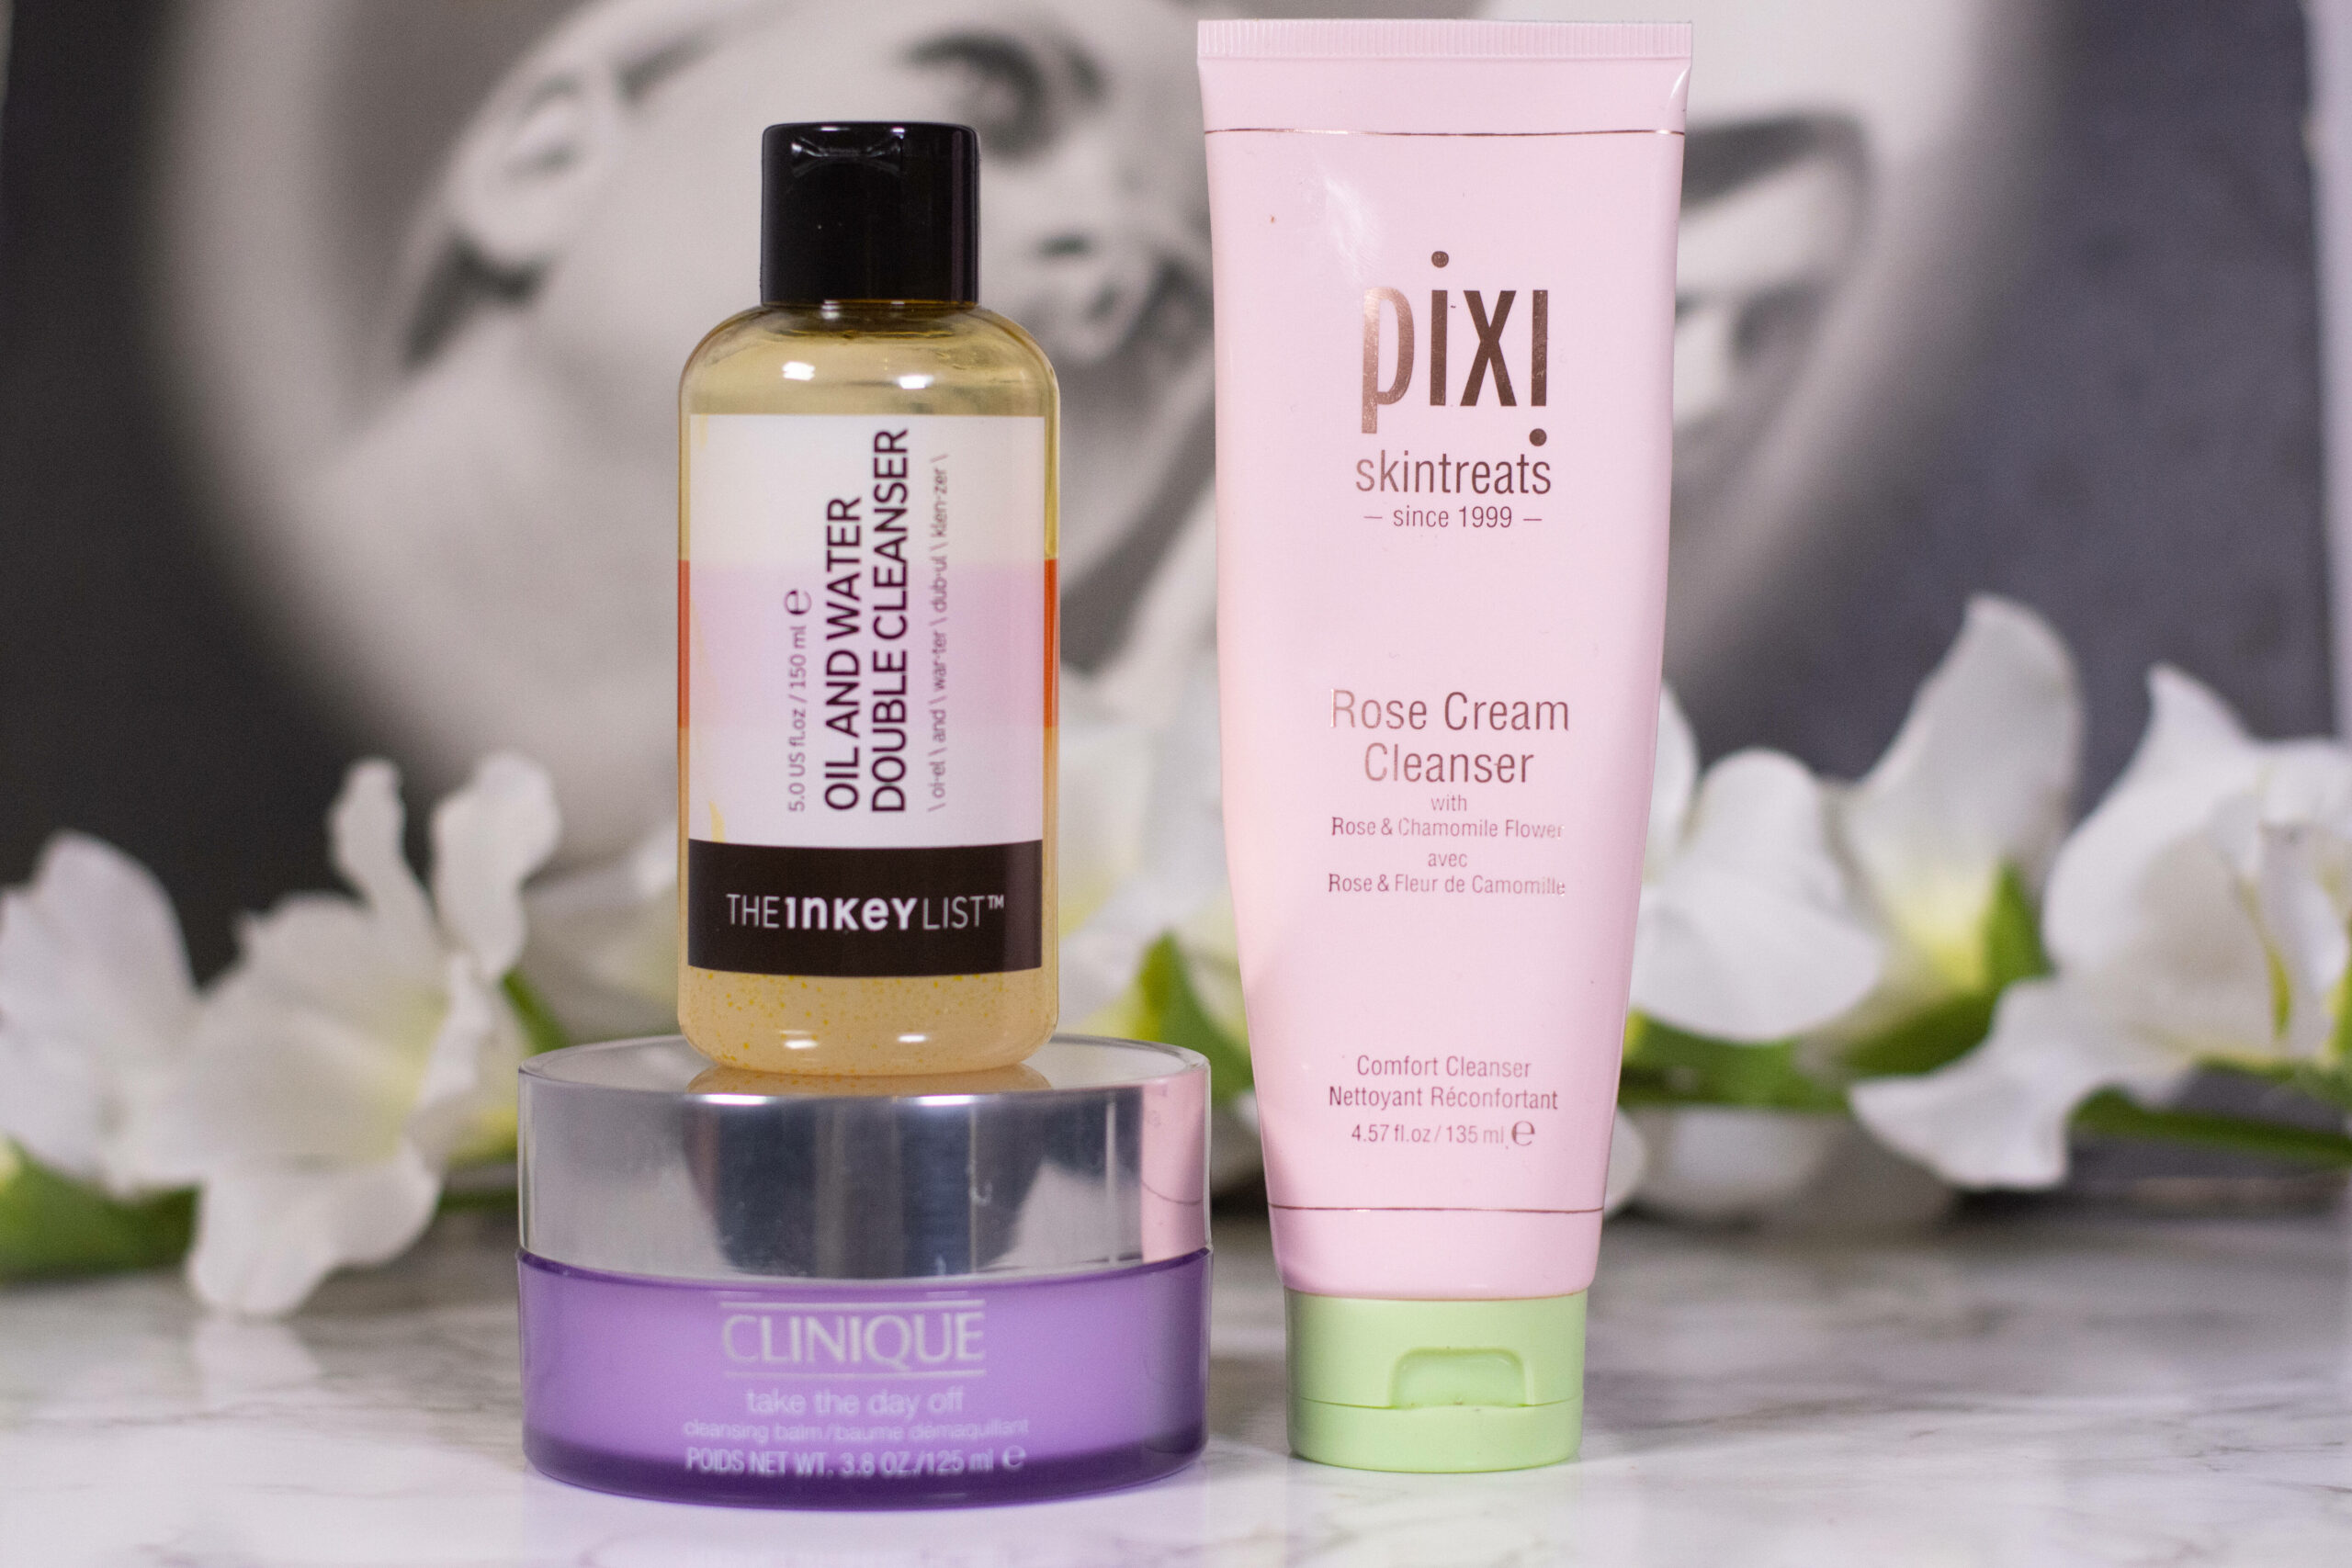 My favorite cleansers of 2019